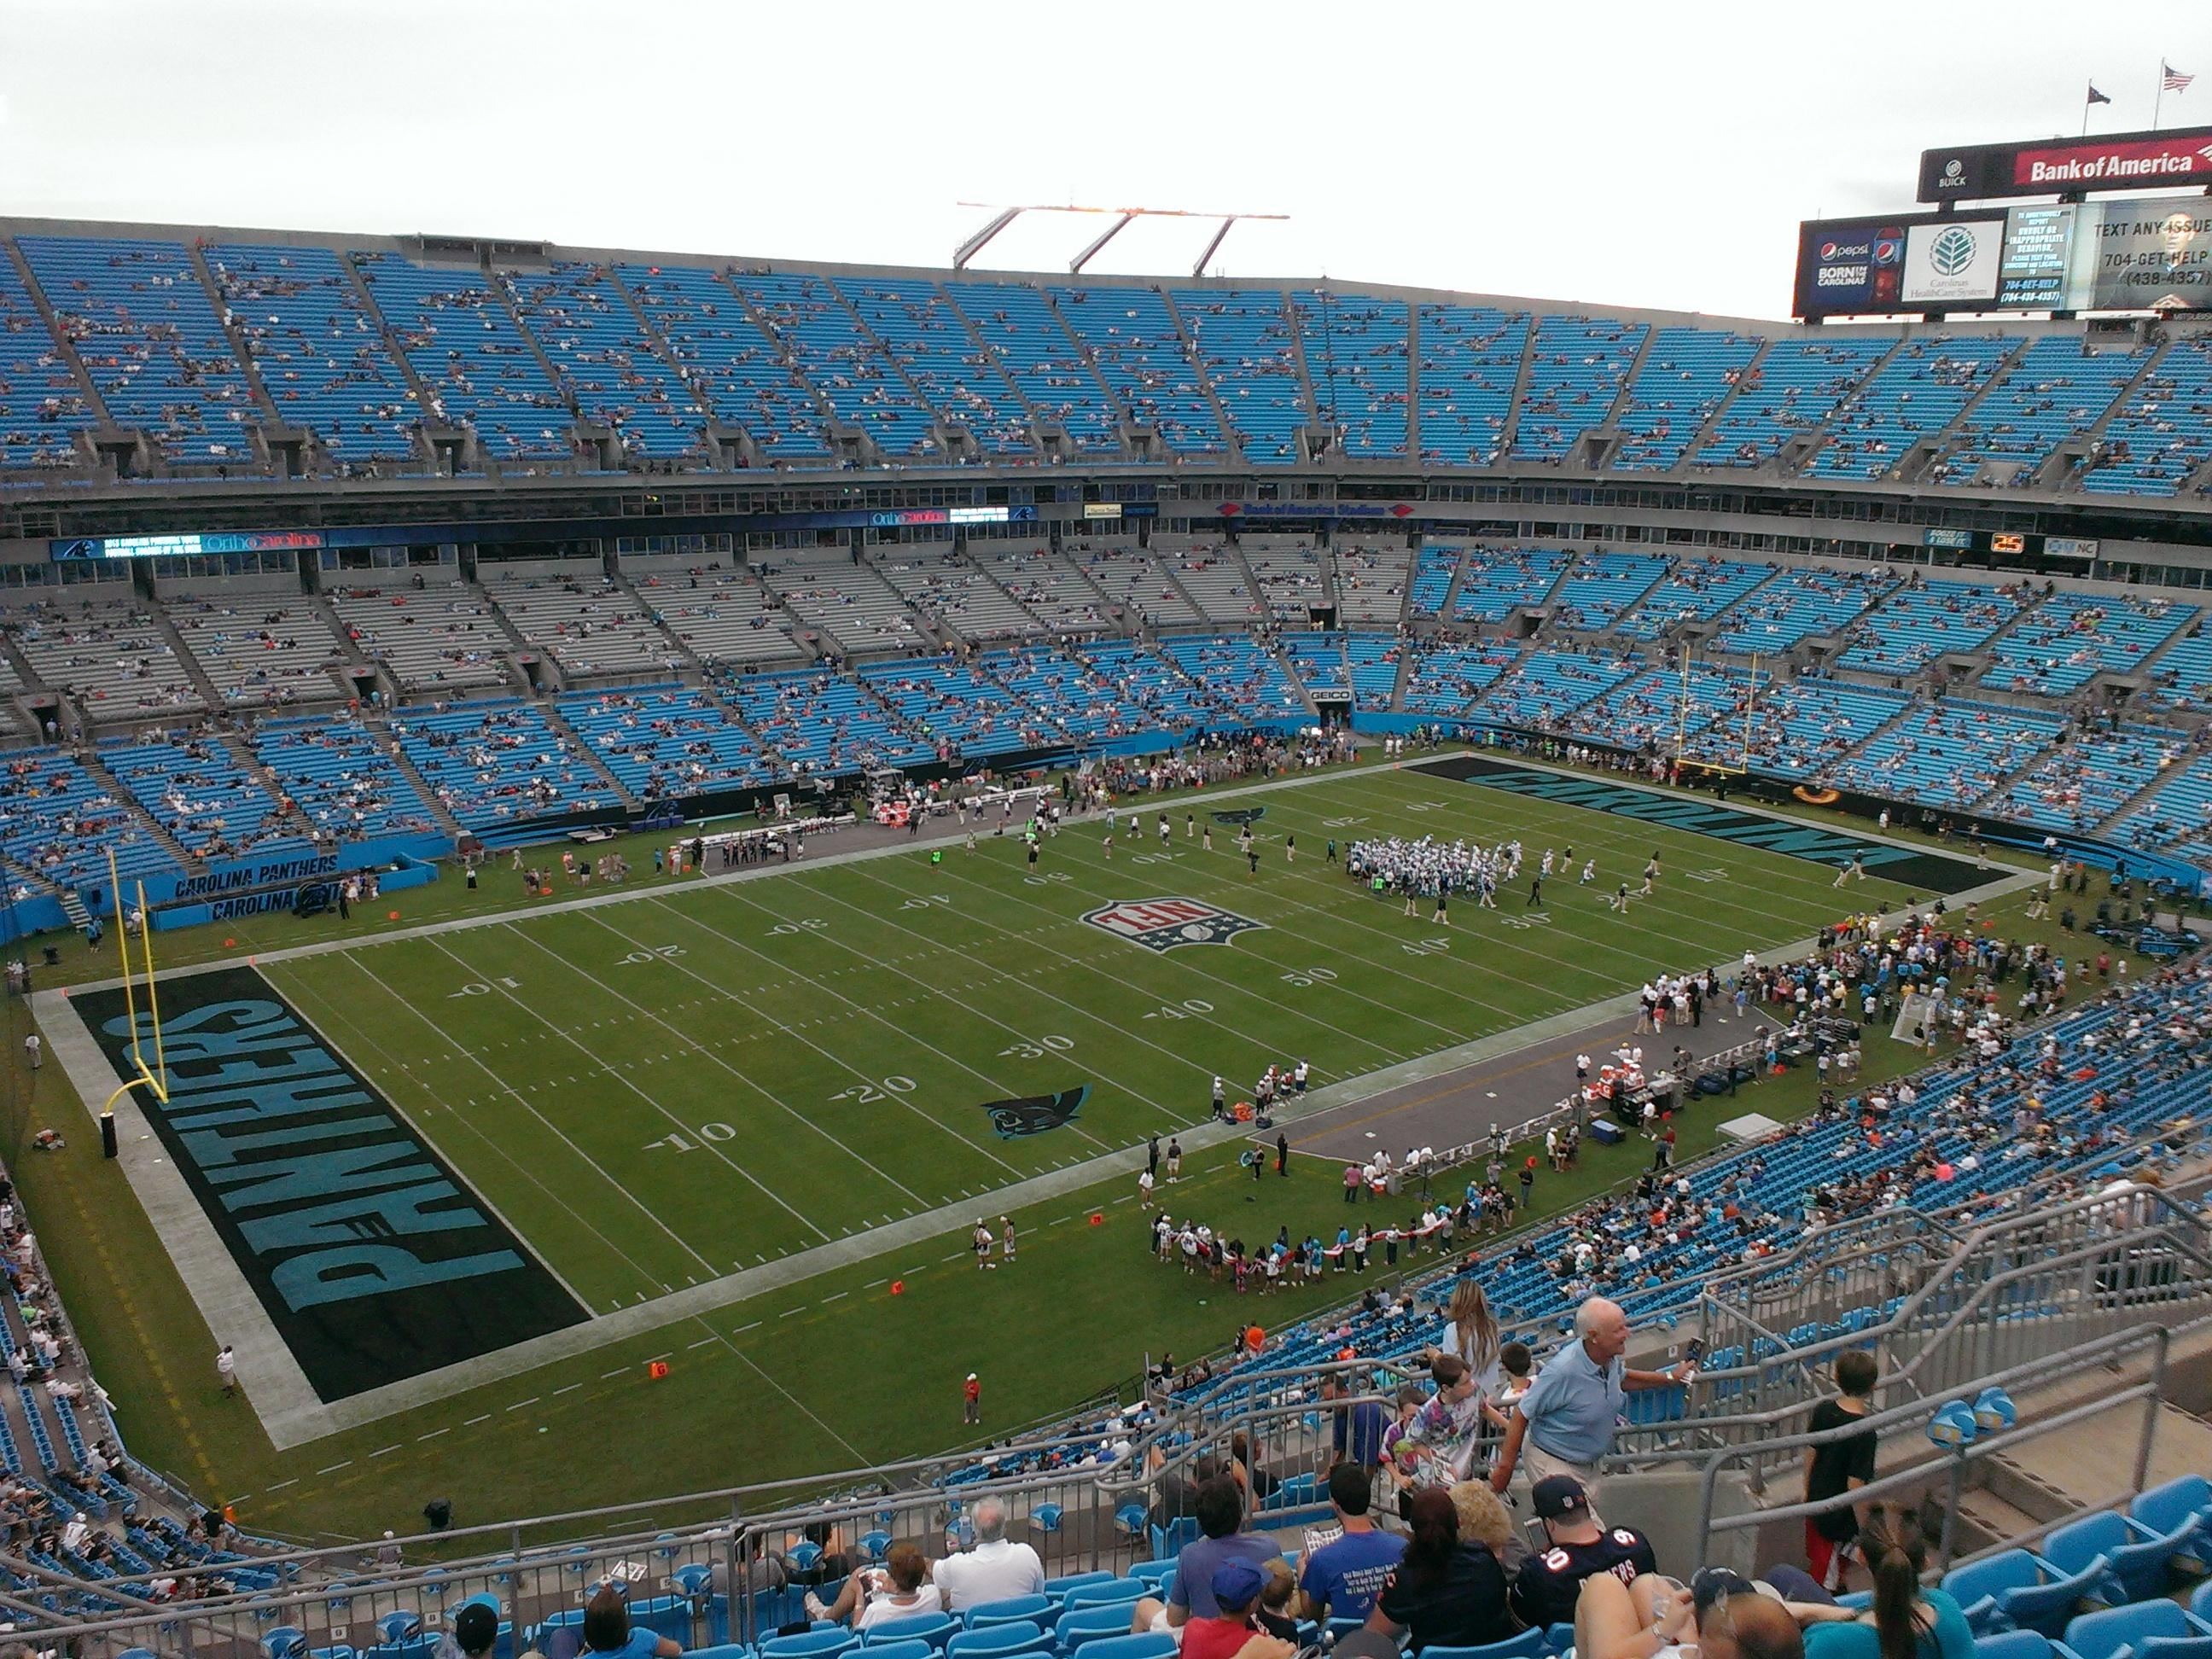 where is the bank of america stadium